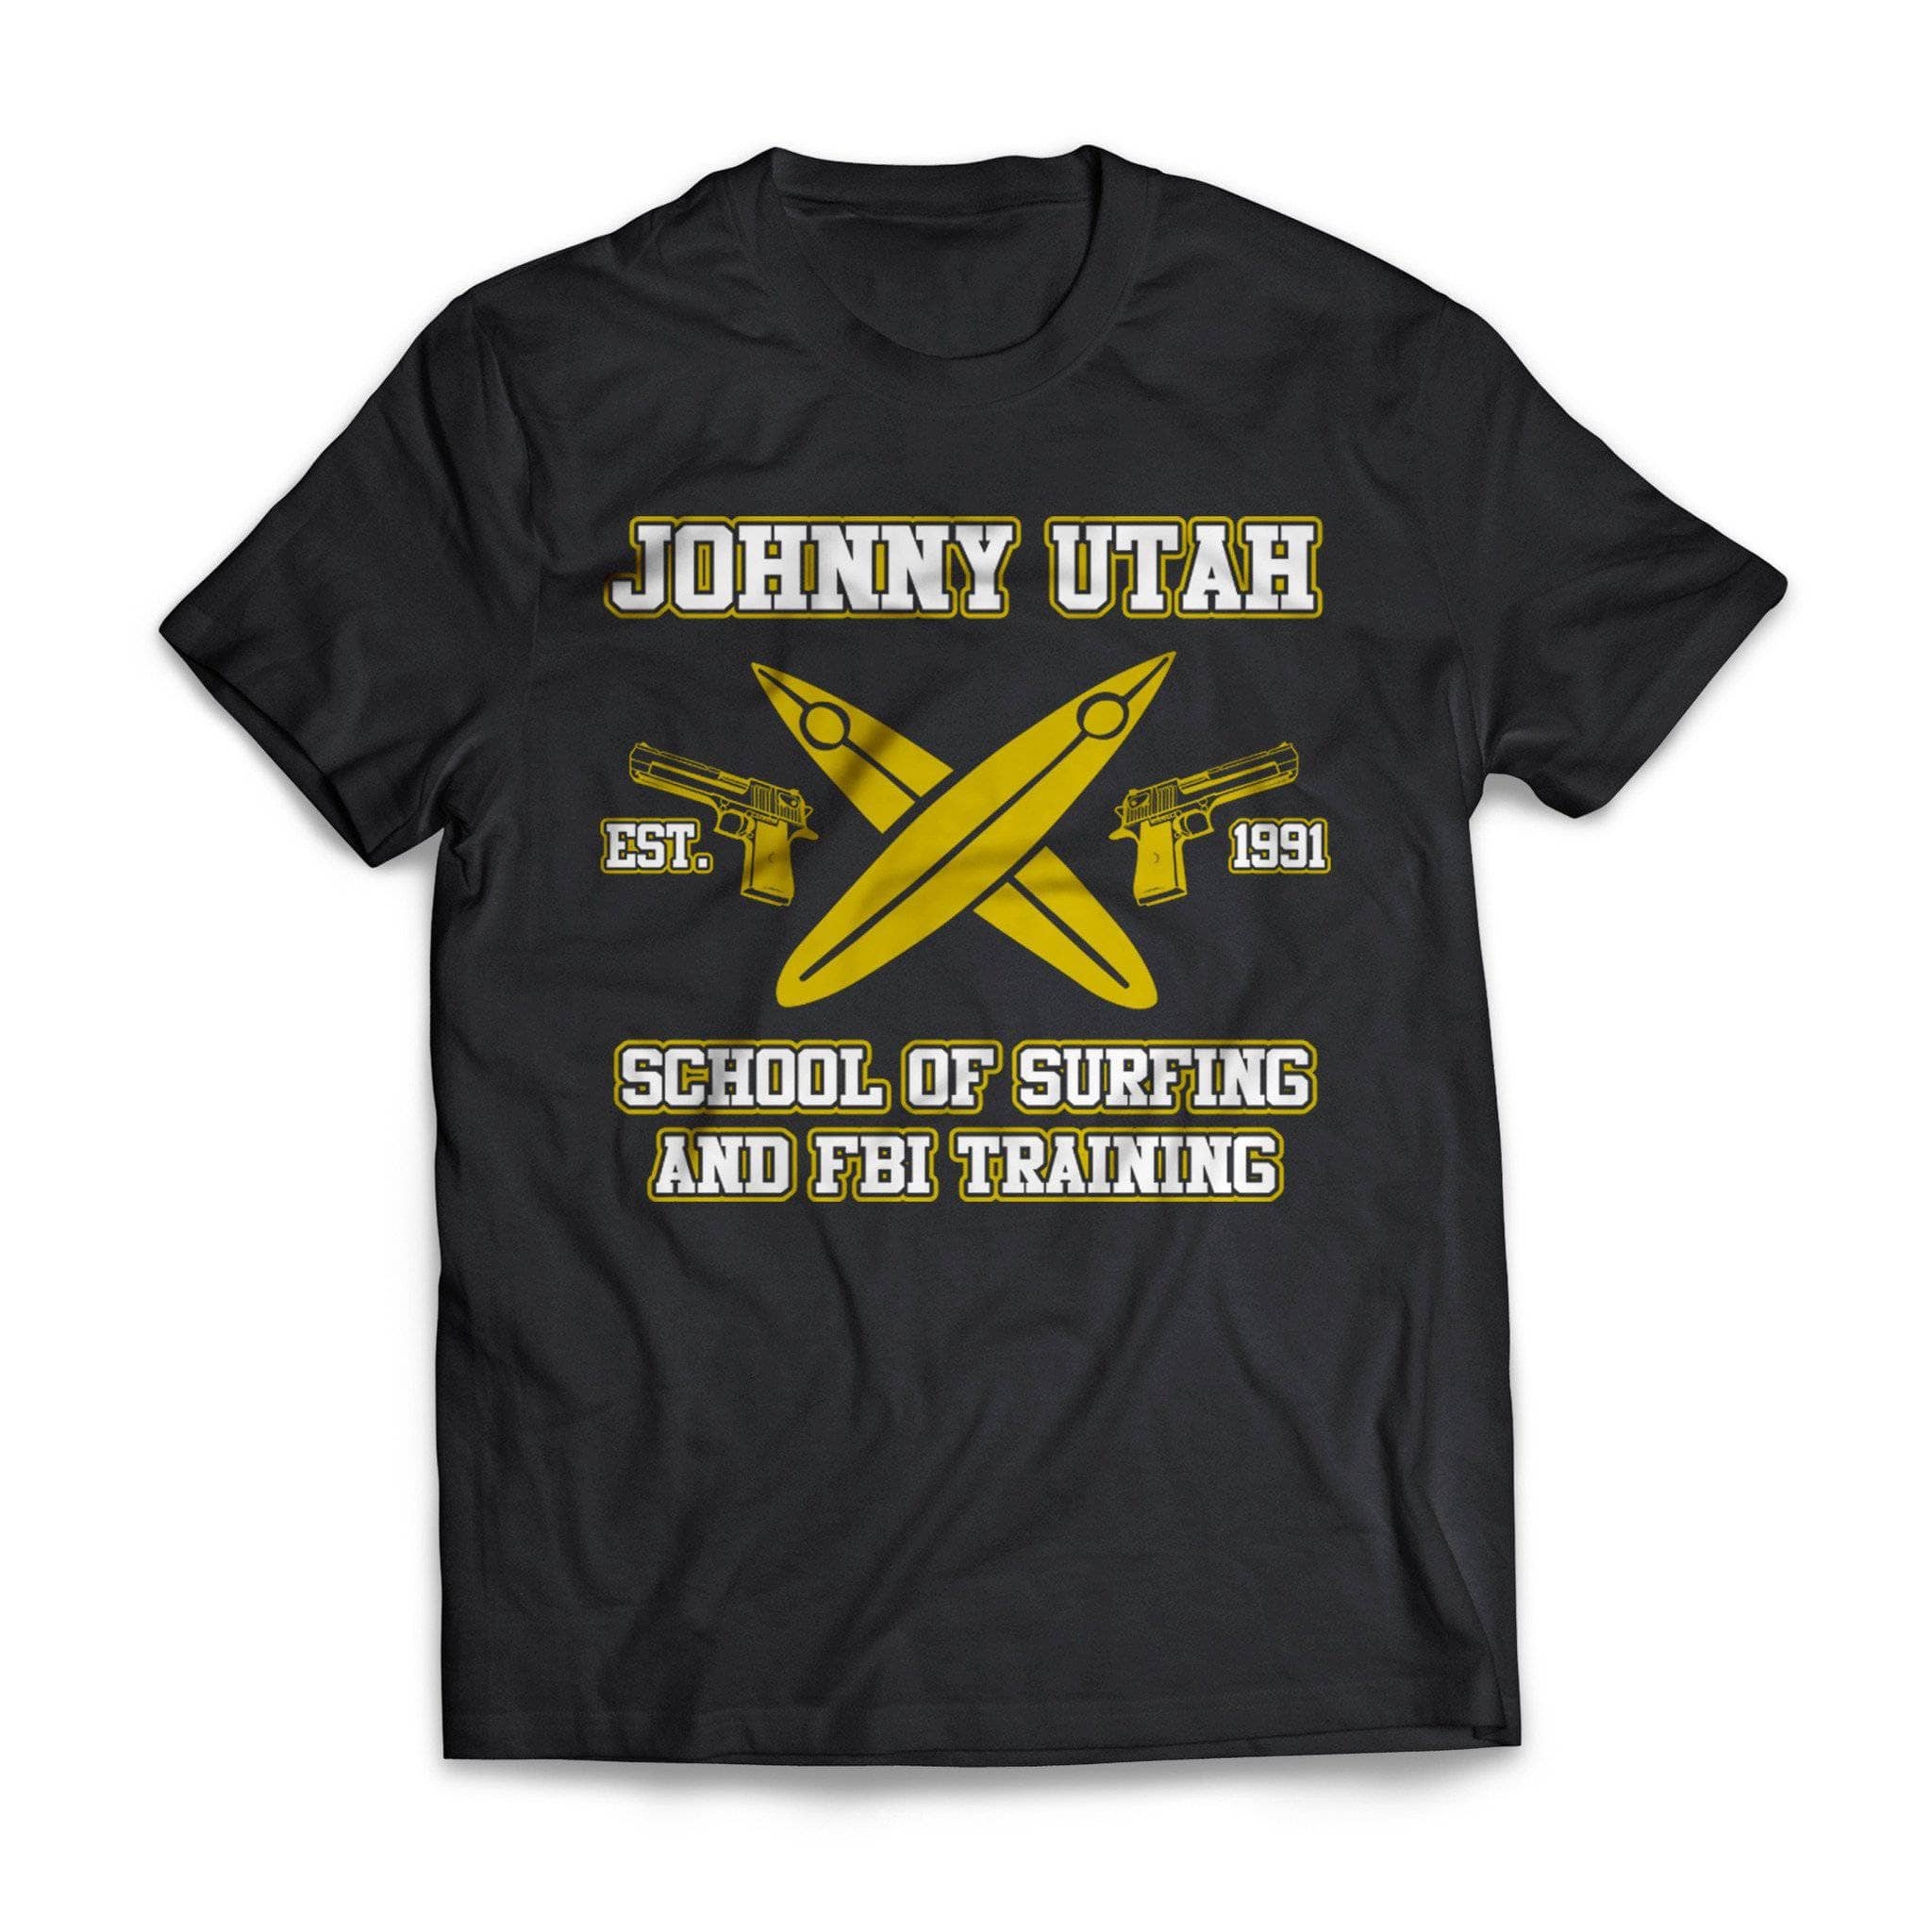 Johnny Utah School